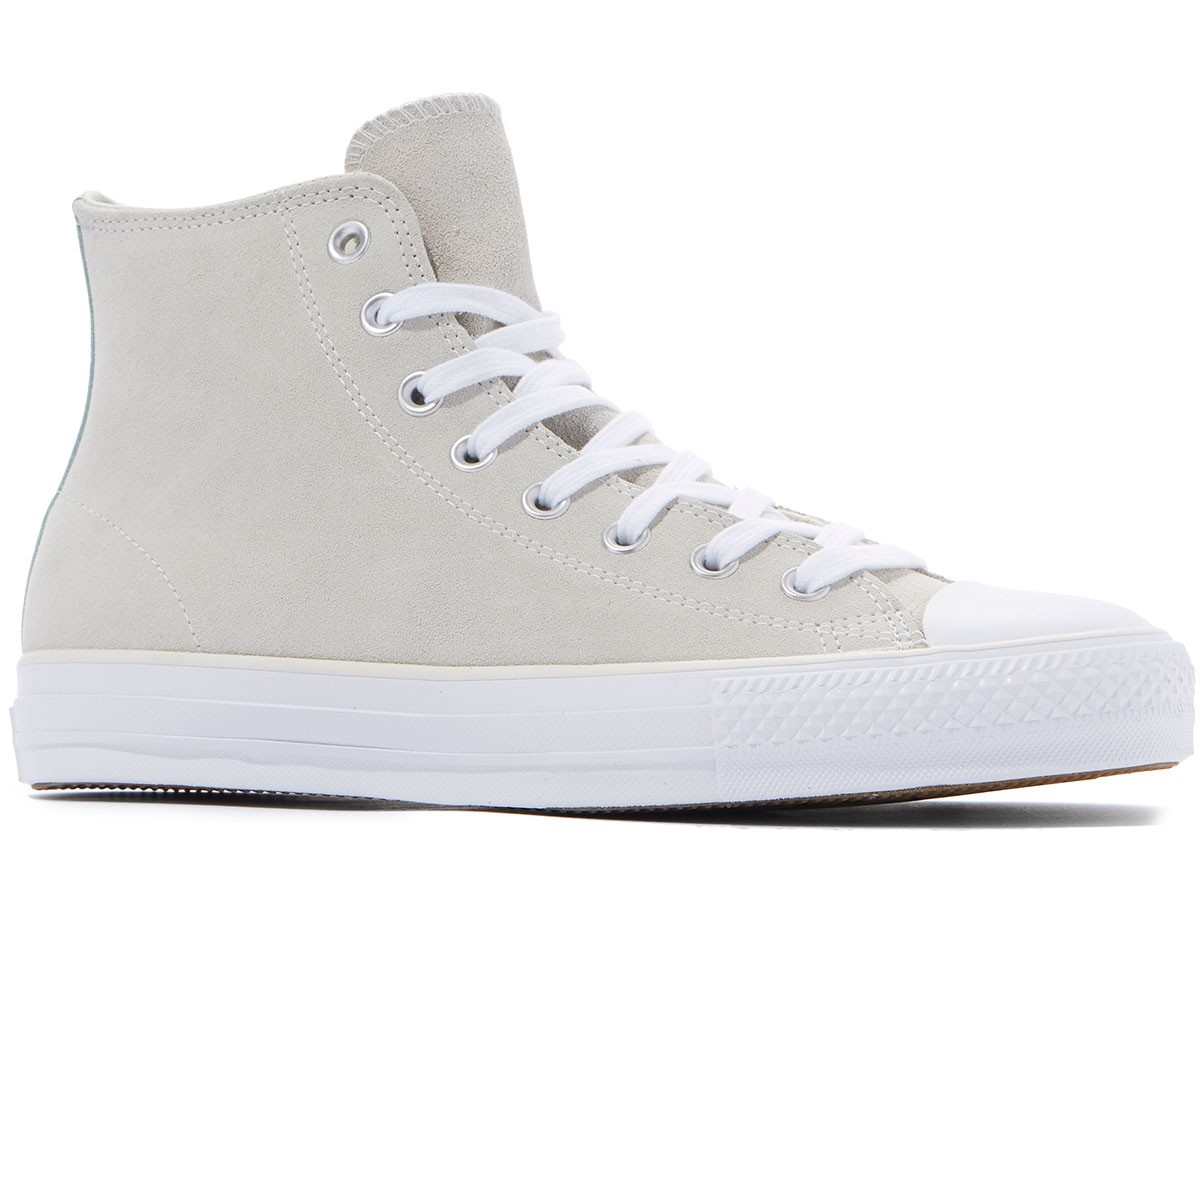 11fc5f617c4b Converse CTAS Pro Hi Louie Lopez Suede Shoes - Buff White Casino - 8.0